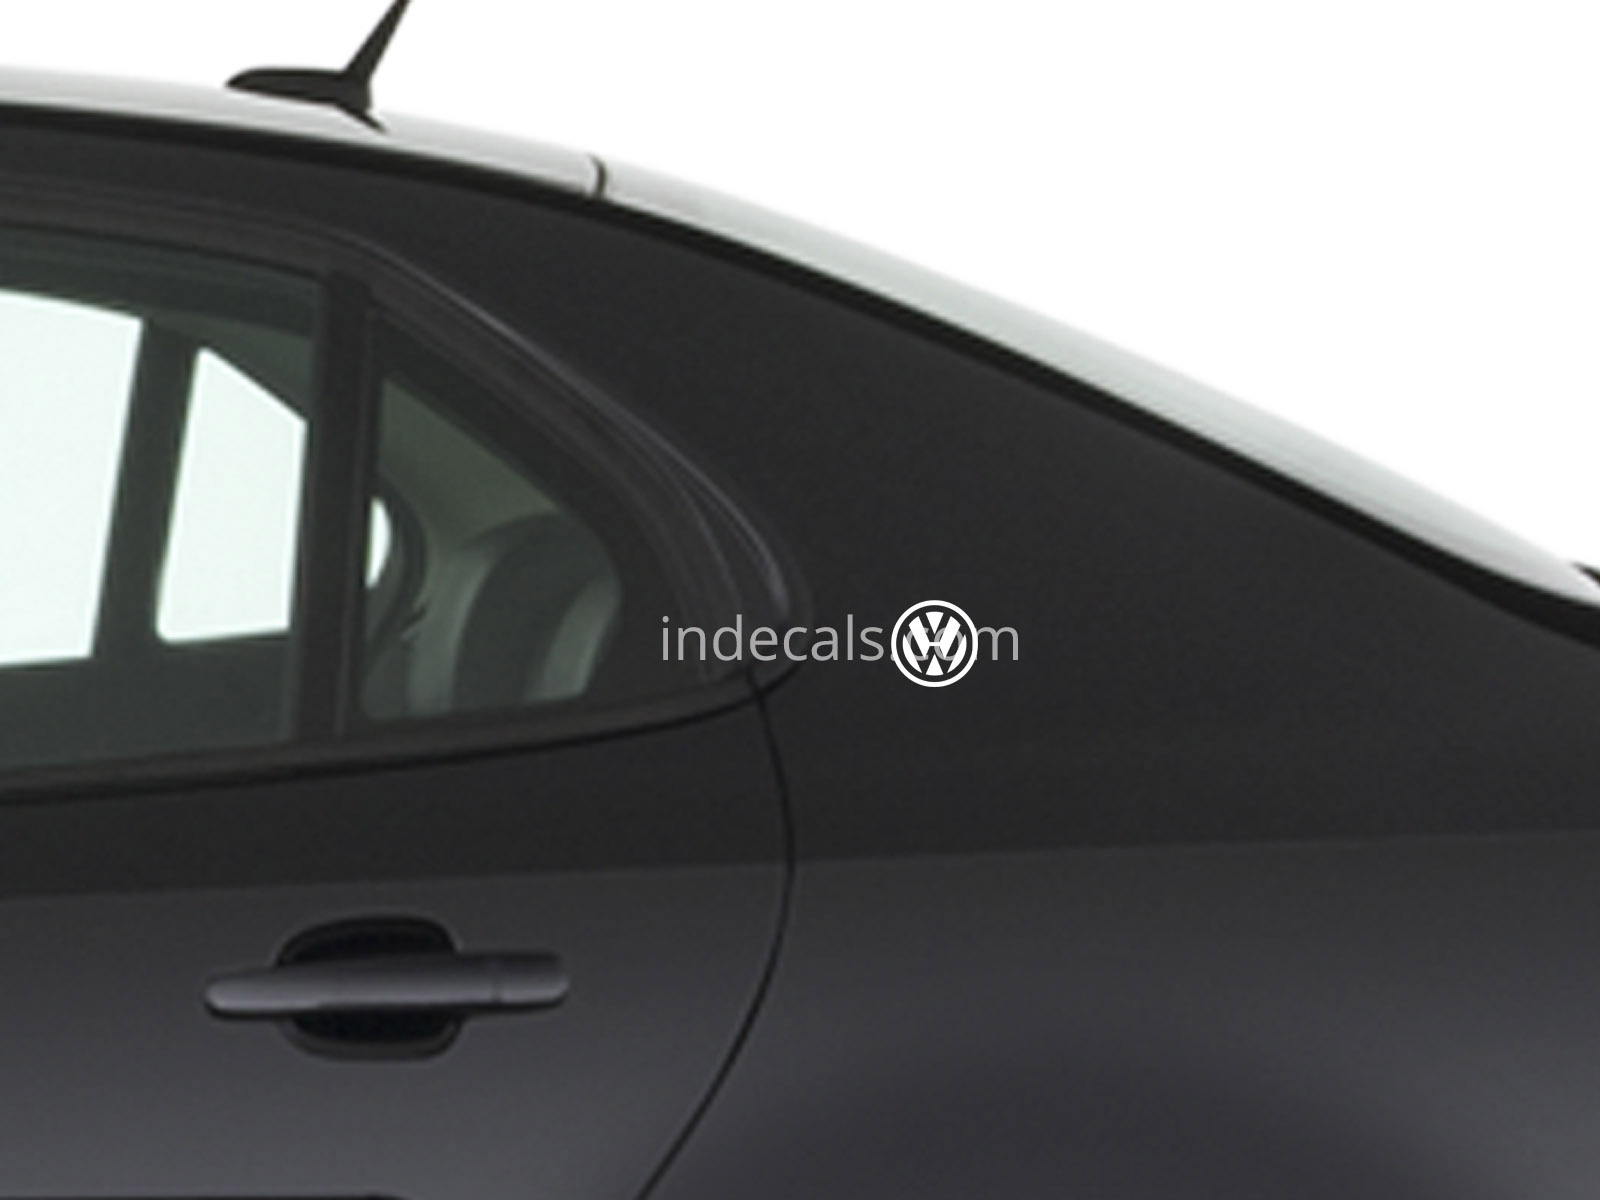 3 x Volkswagen Stickers for Rear Wing - White